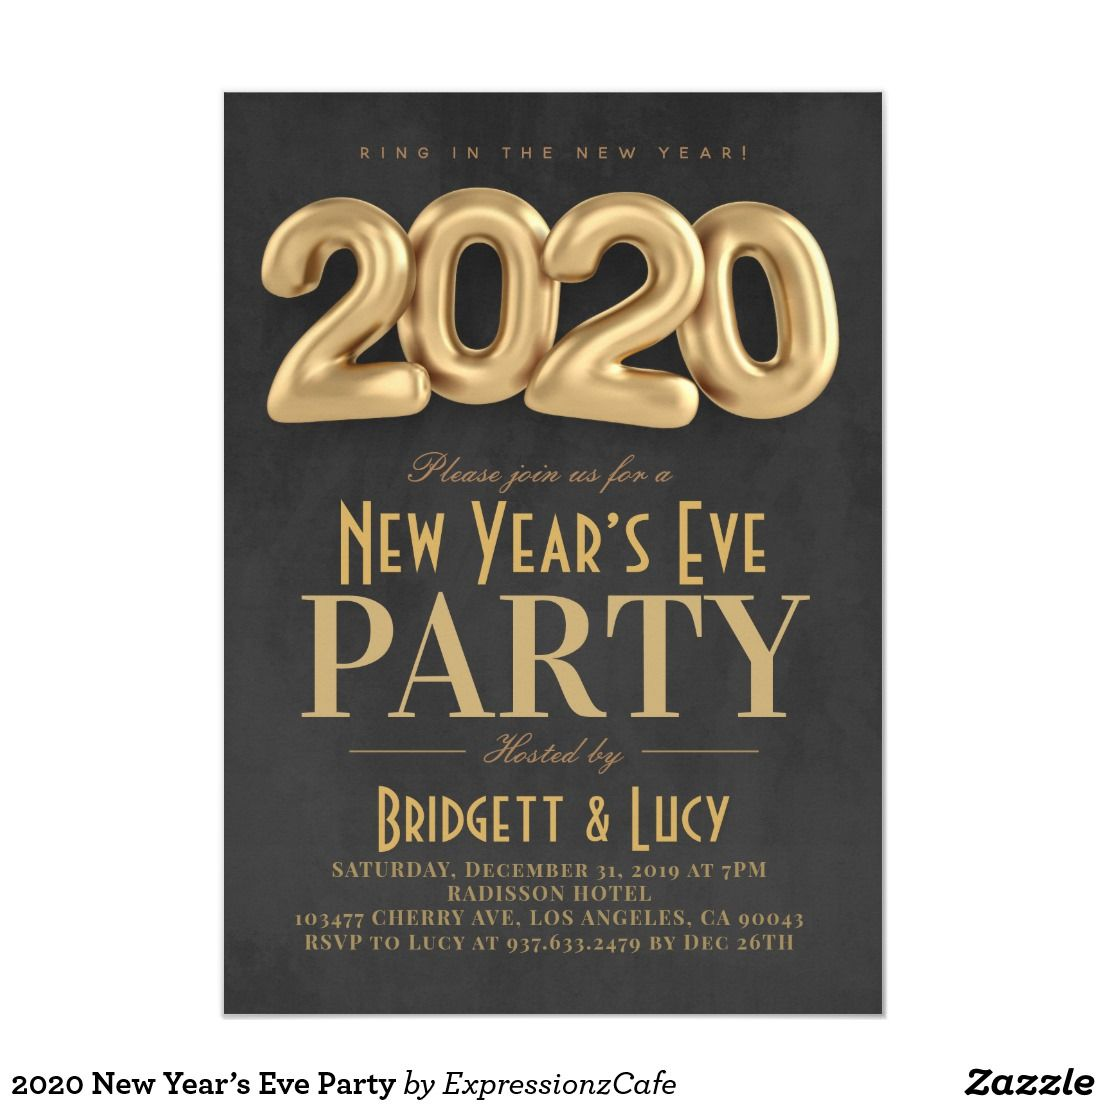 2020 New Year's Eve Party Invitation Eve